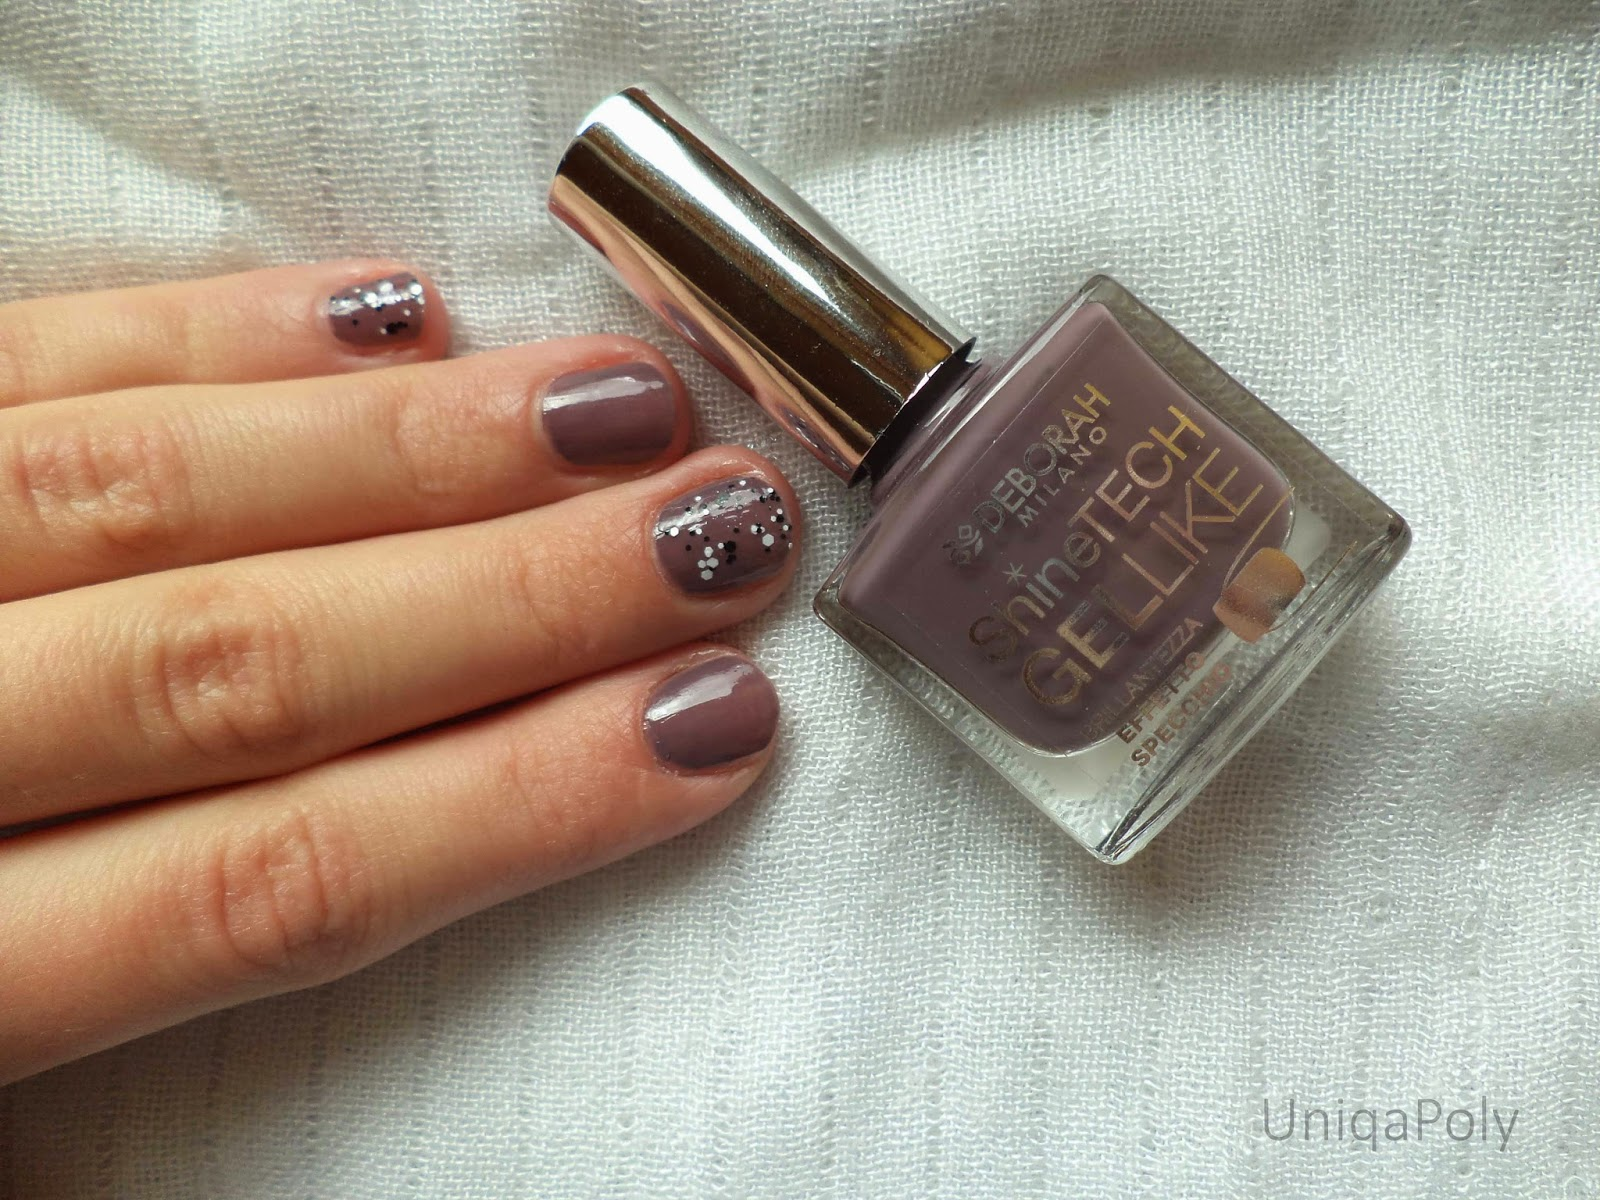 Uniqapoly Notd Deborah Shinetech Gel Like In 03